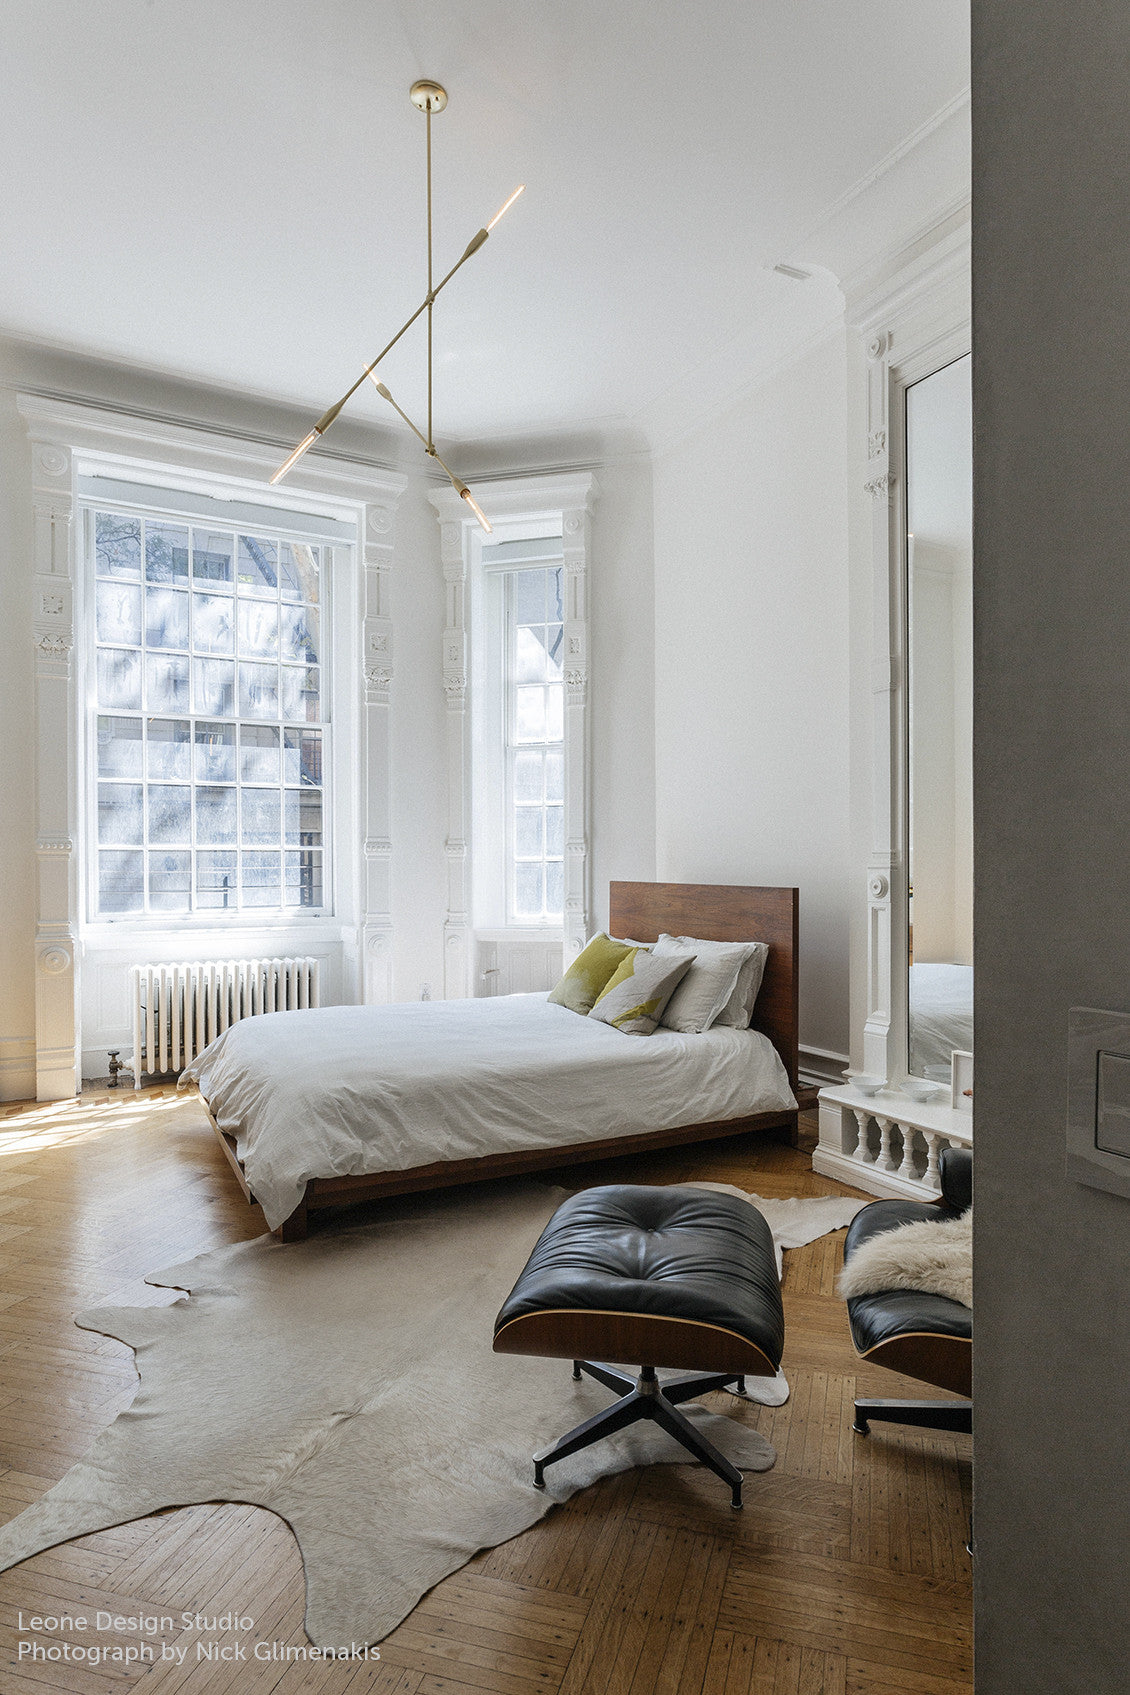 Studio DUNN's Sorenthia 2-Arm Light in Brushed Brass installed over a bedroom in a Brooklyn brownstone designed by Leone Design and photographed by Nick Glimenakis